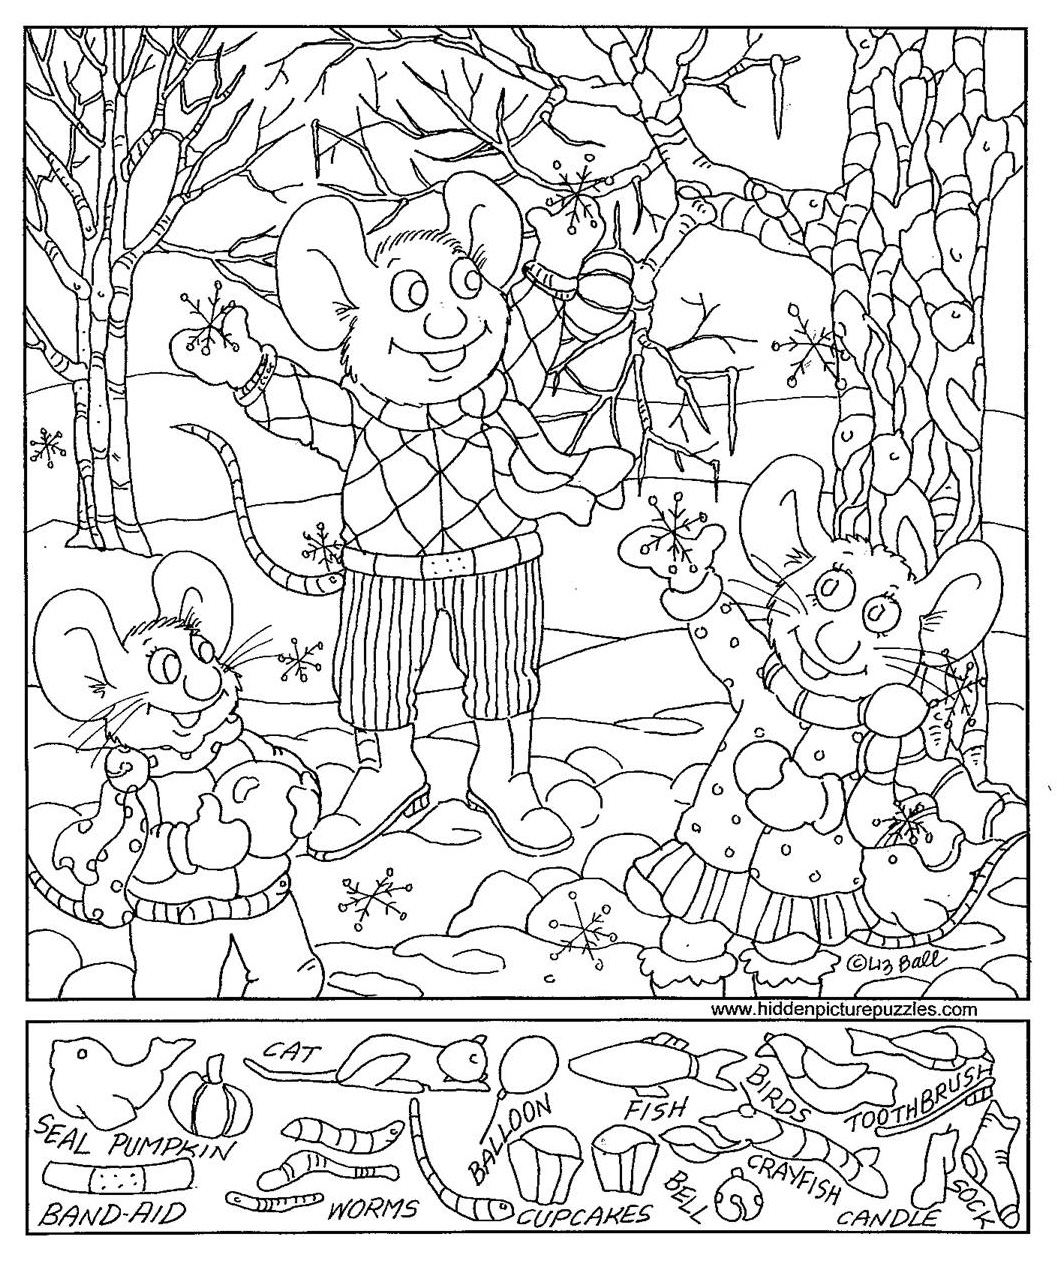 Christmas Coloring Hidden Pictures With Printables Happy Holidays